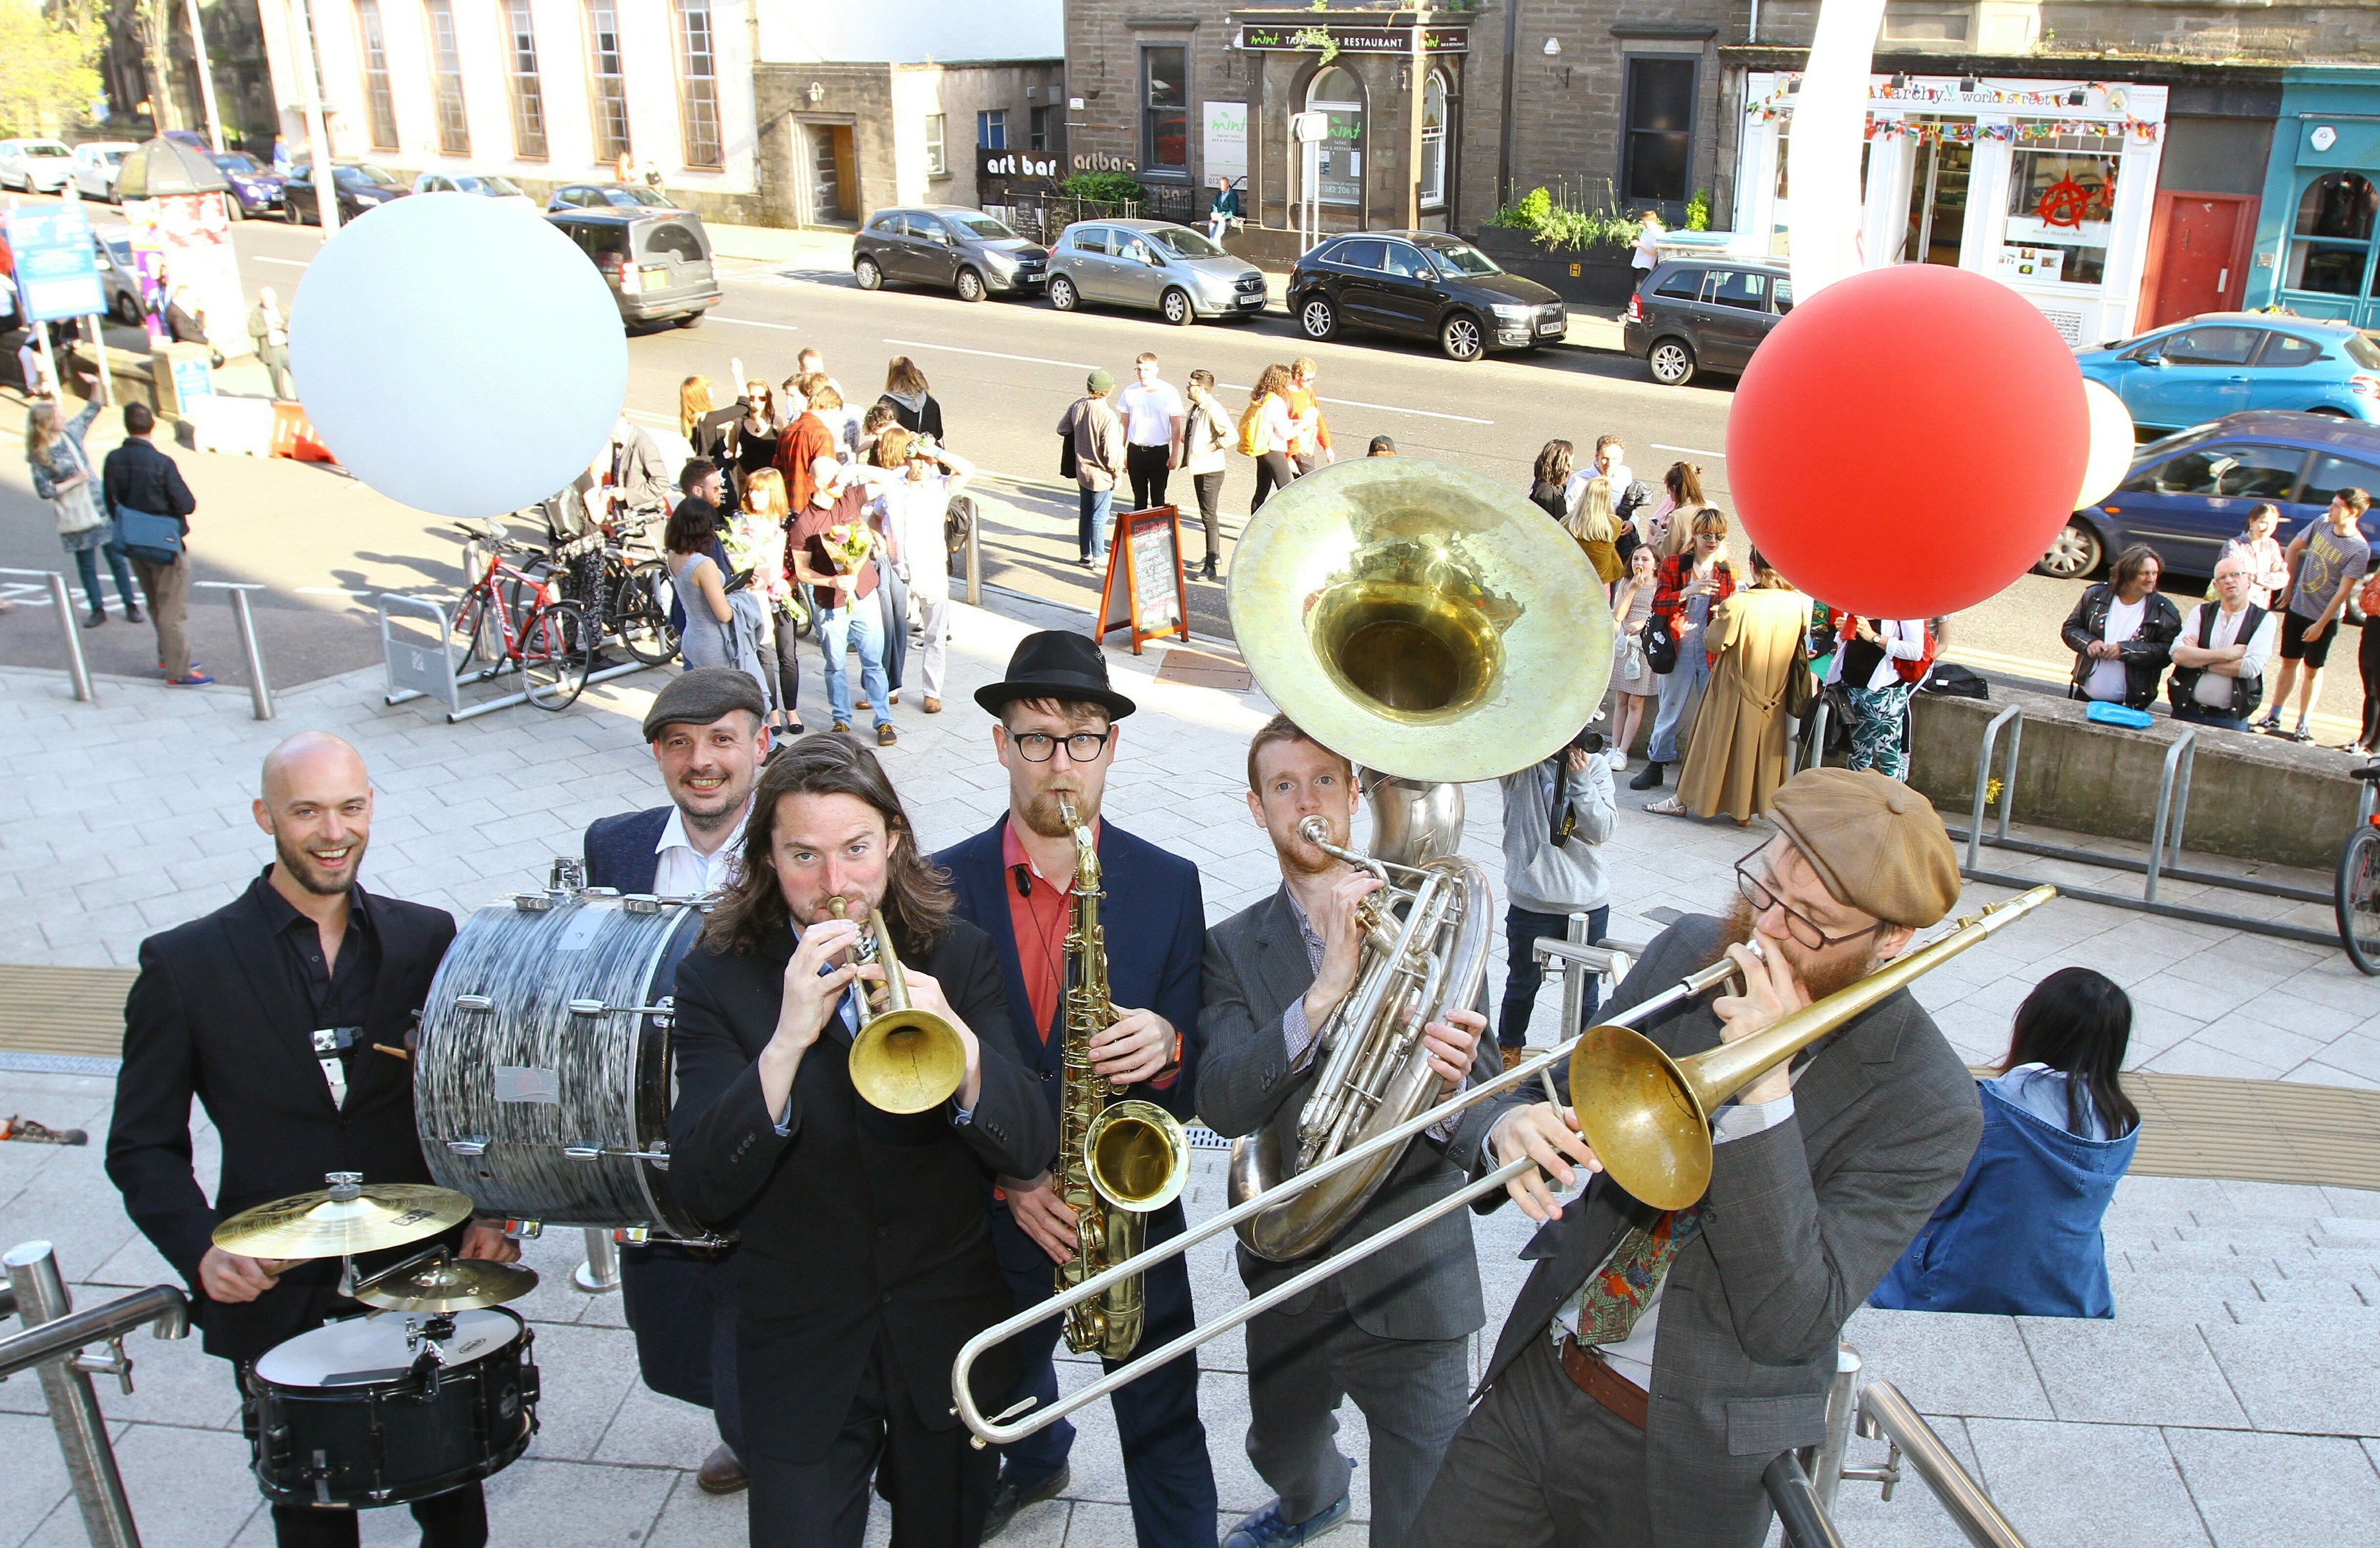 The Brass Gumbo band entertaining at the opening of the DJCAD Degree Show.